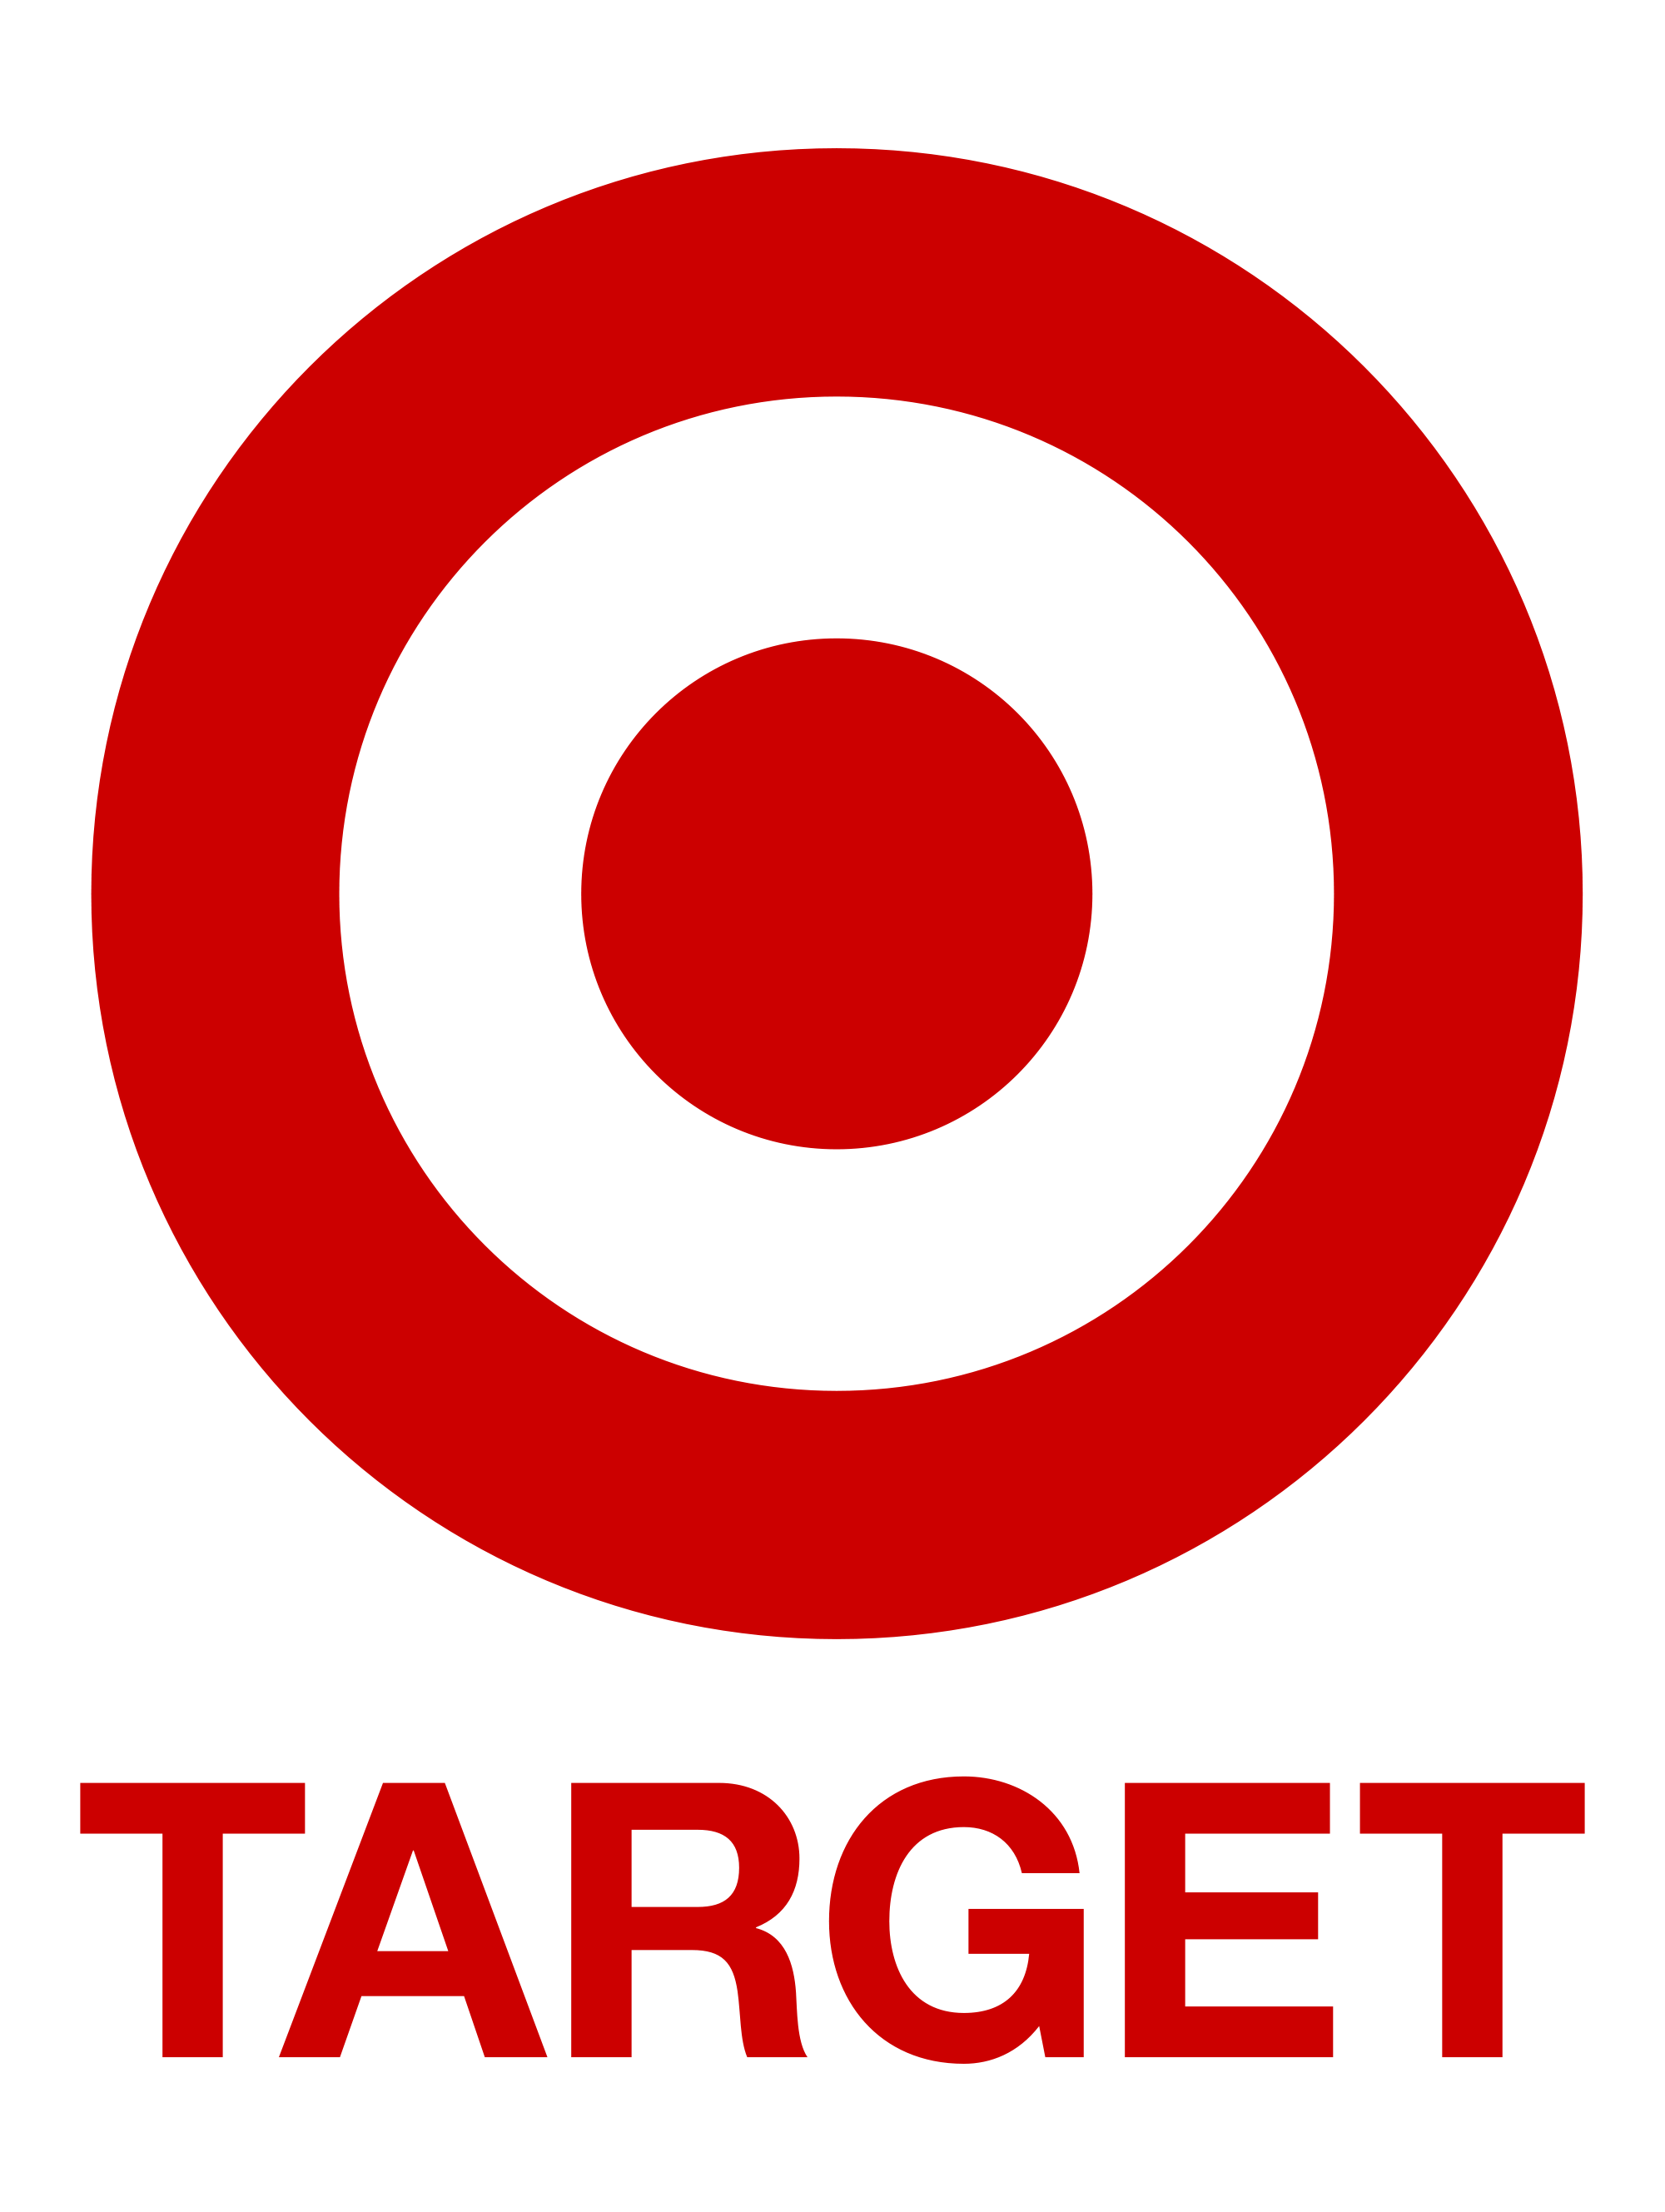 How to Save More at Target